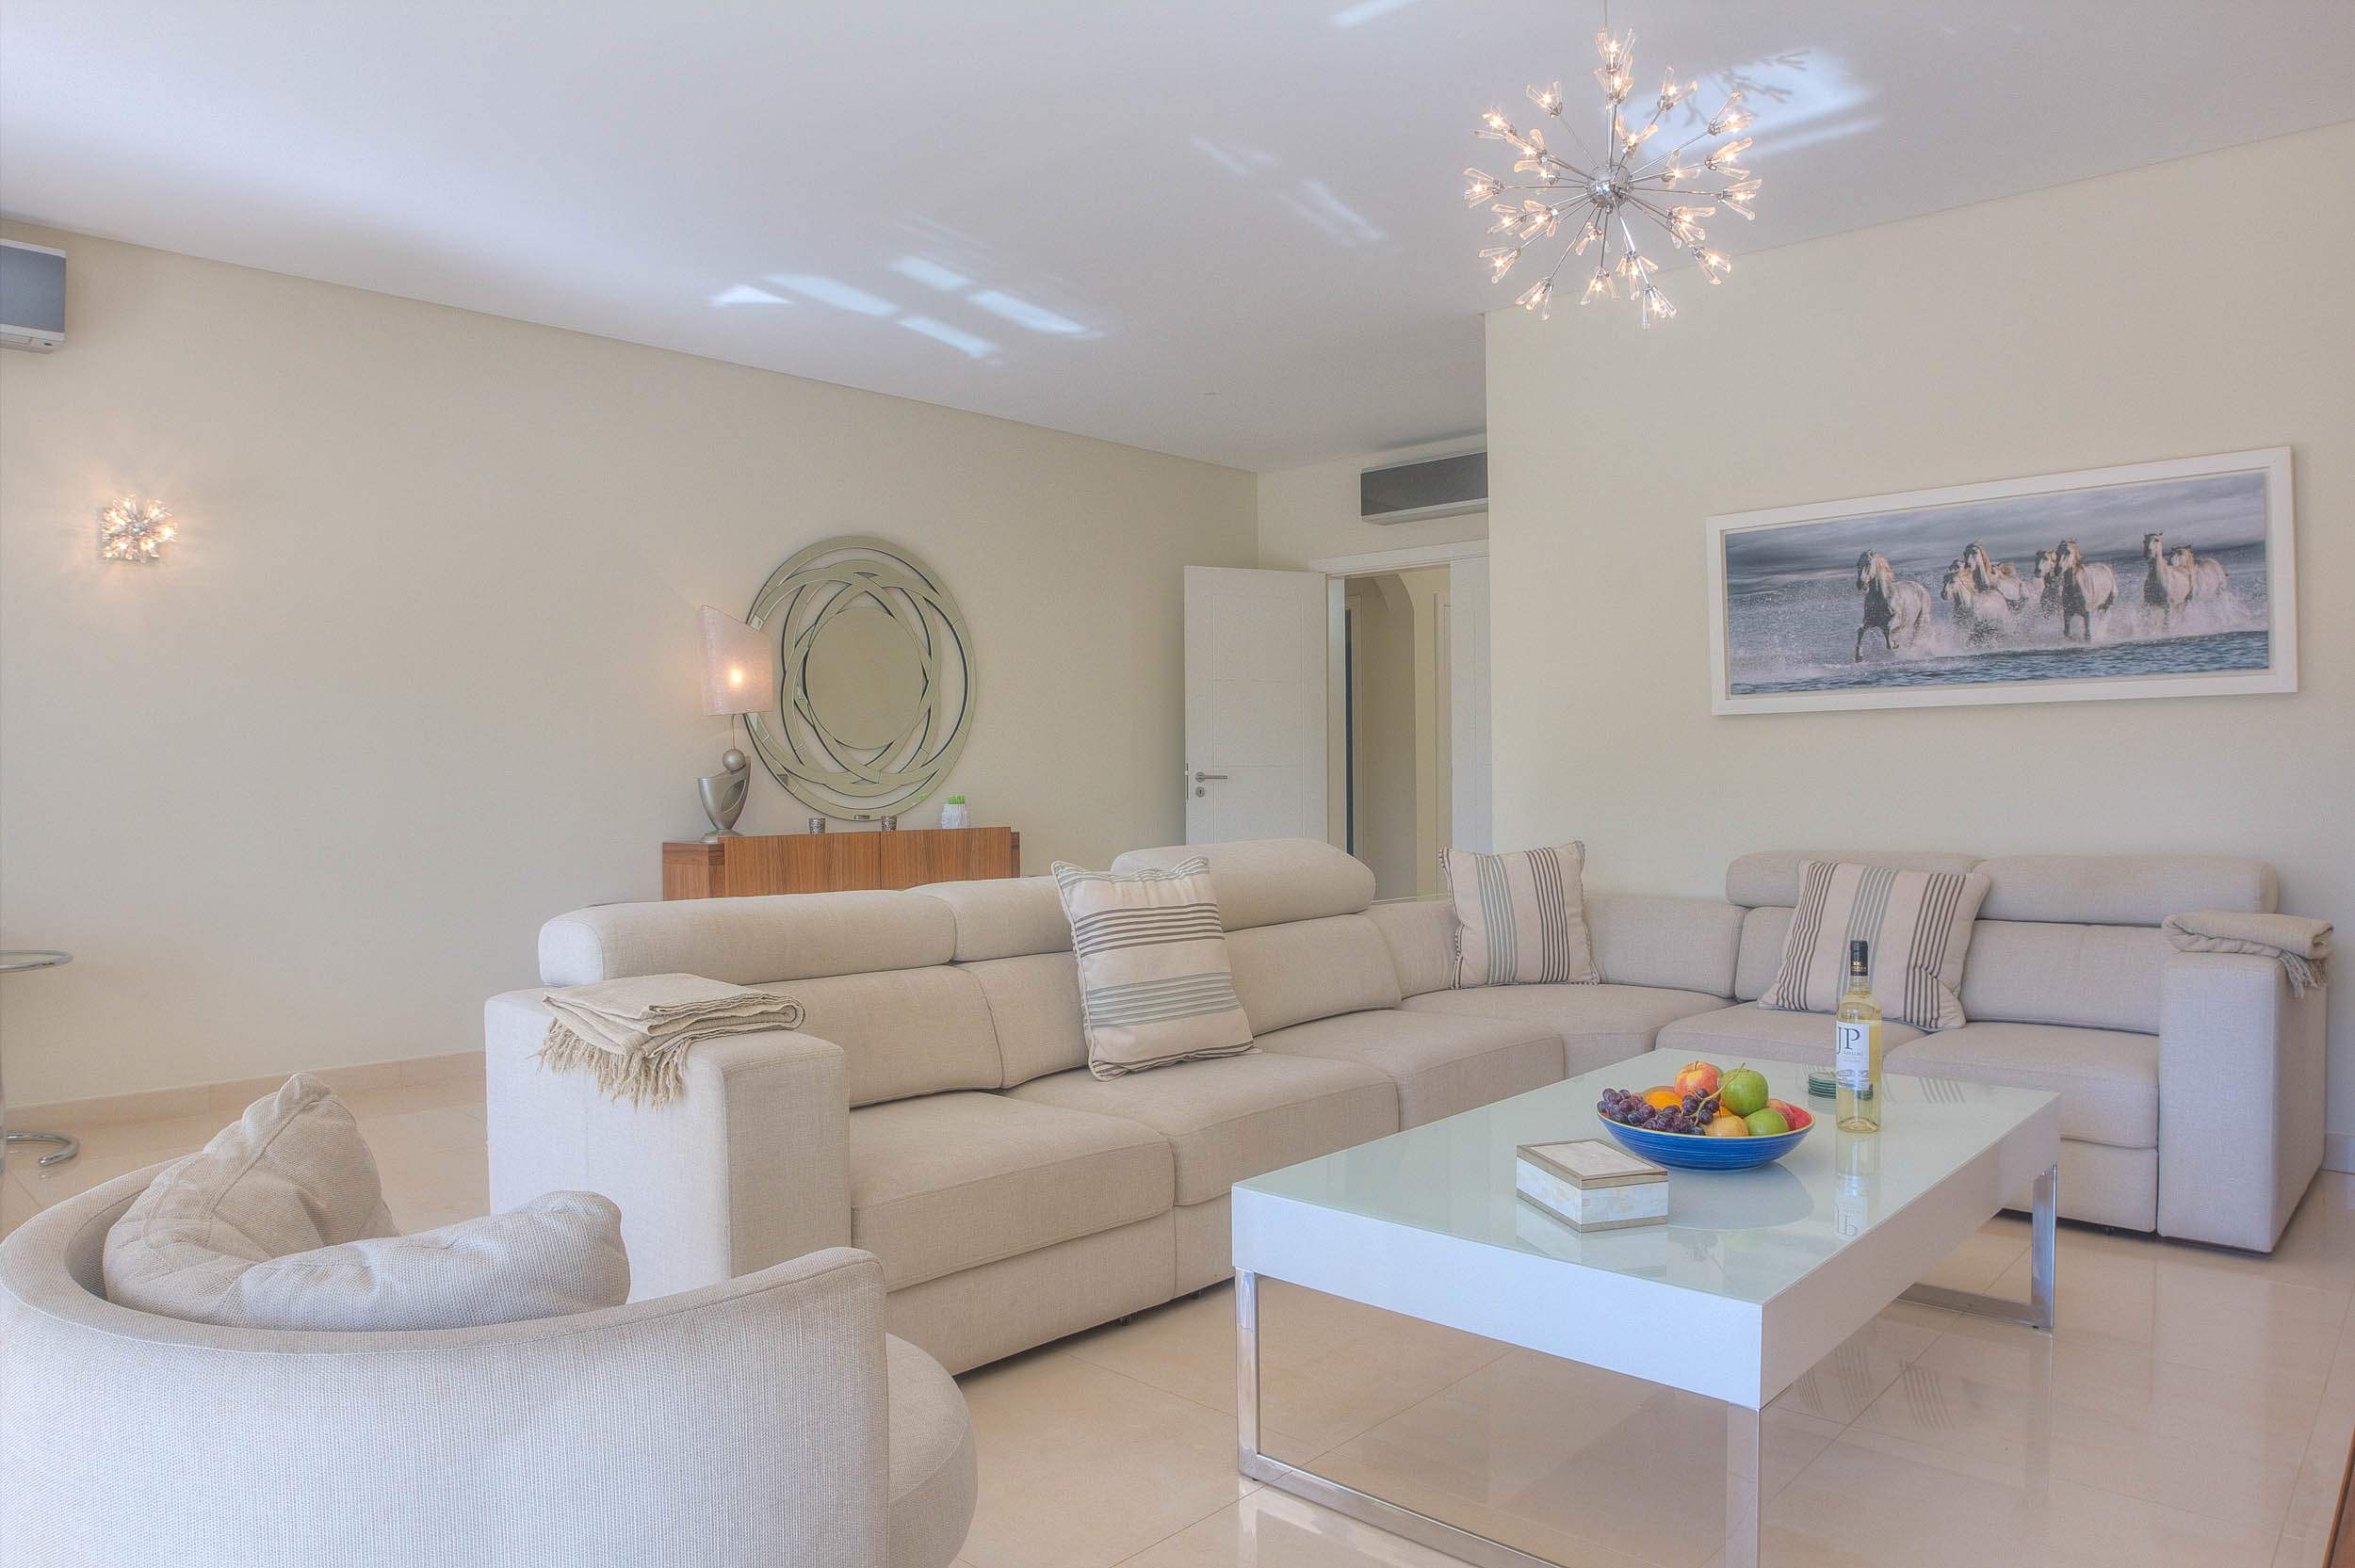 Villa Vida Doce, 6 bedroom villa in Vilamoura Area, Algarve Photo #4